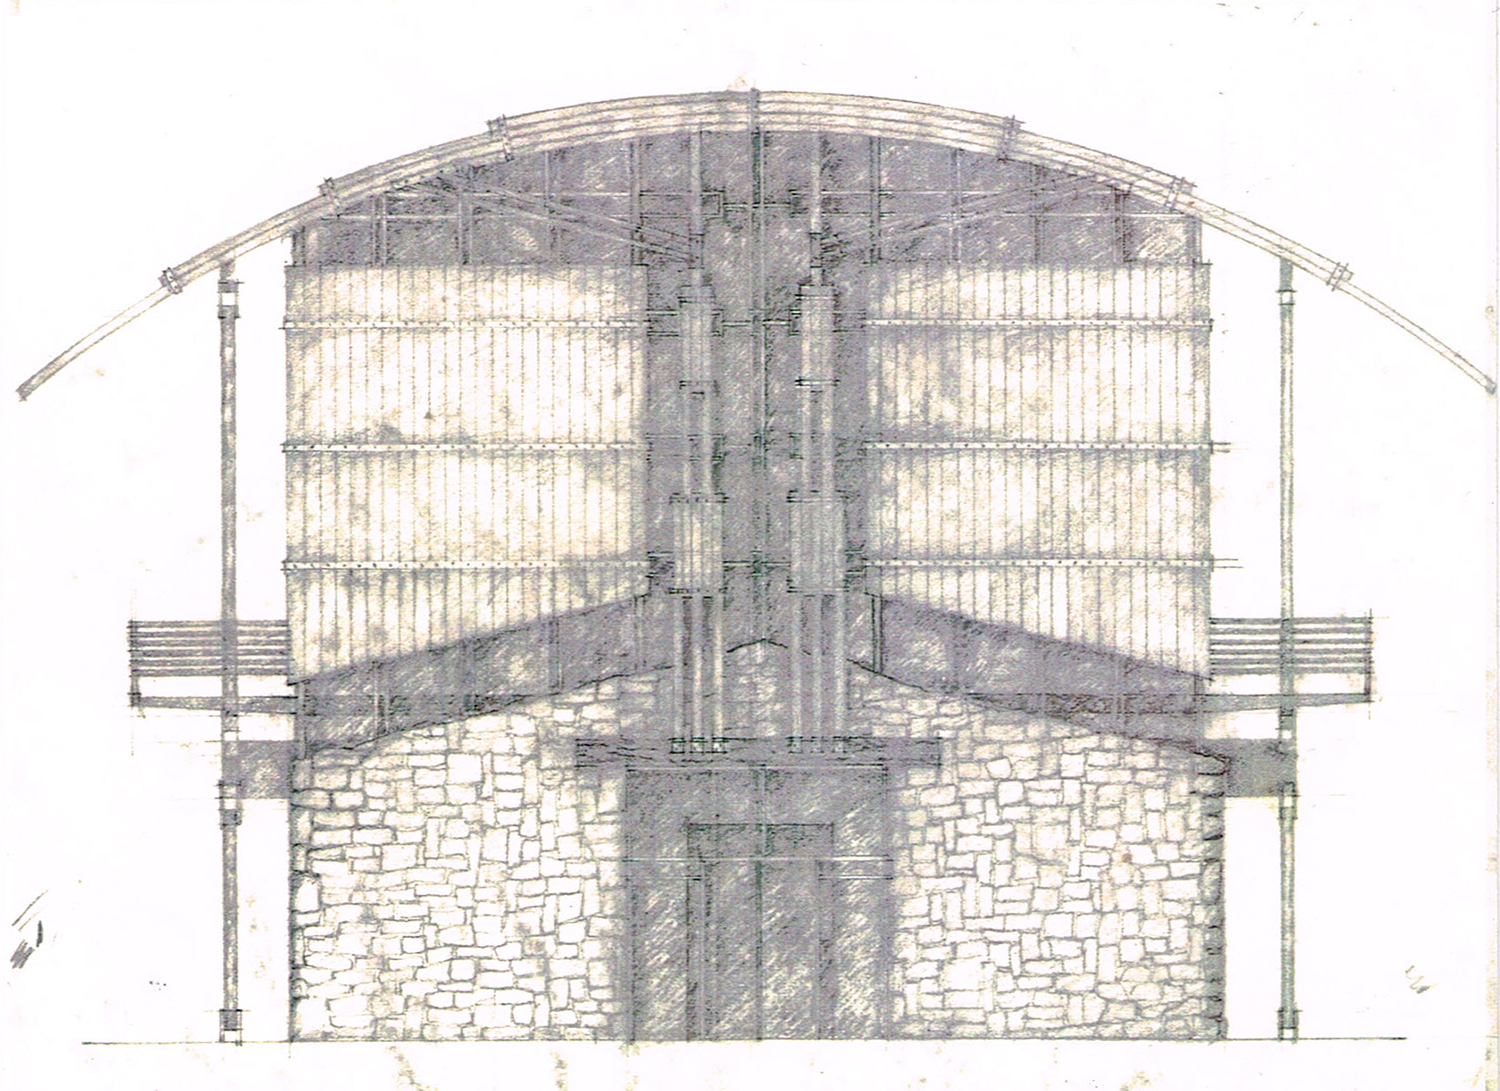 East Elevation Sketch